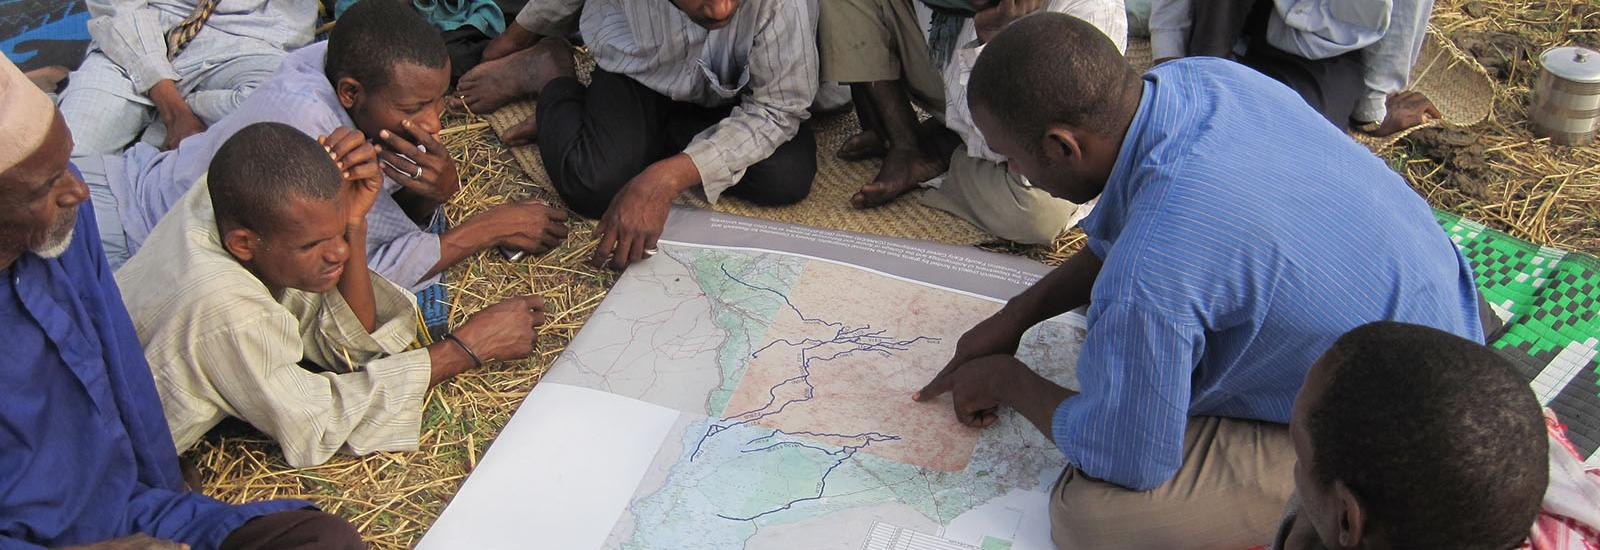 Researcher goes over maps with locals abroad